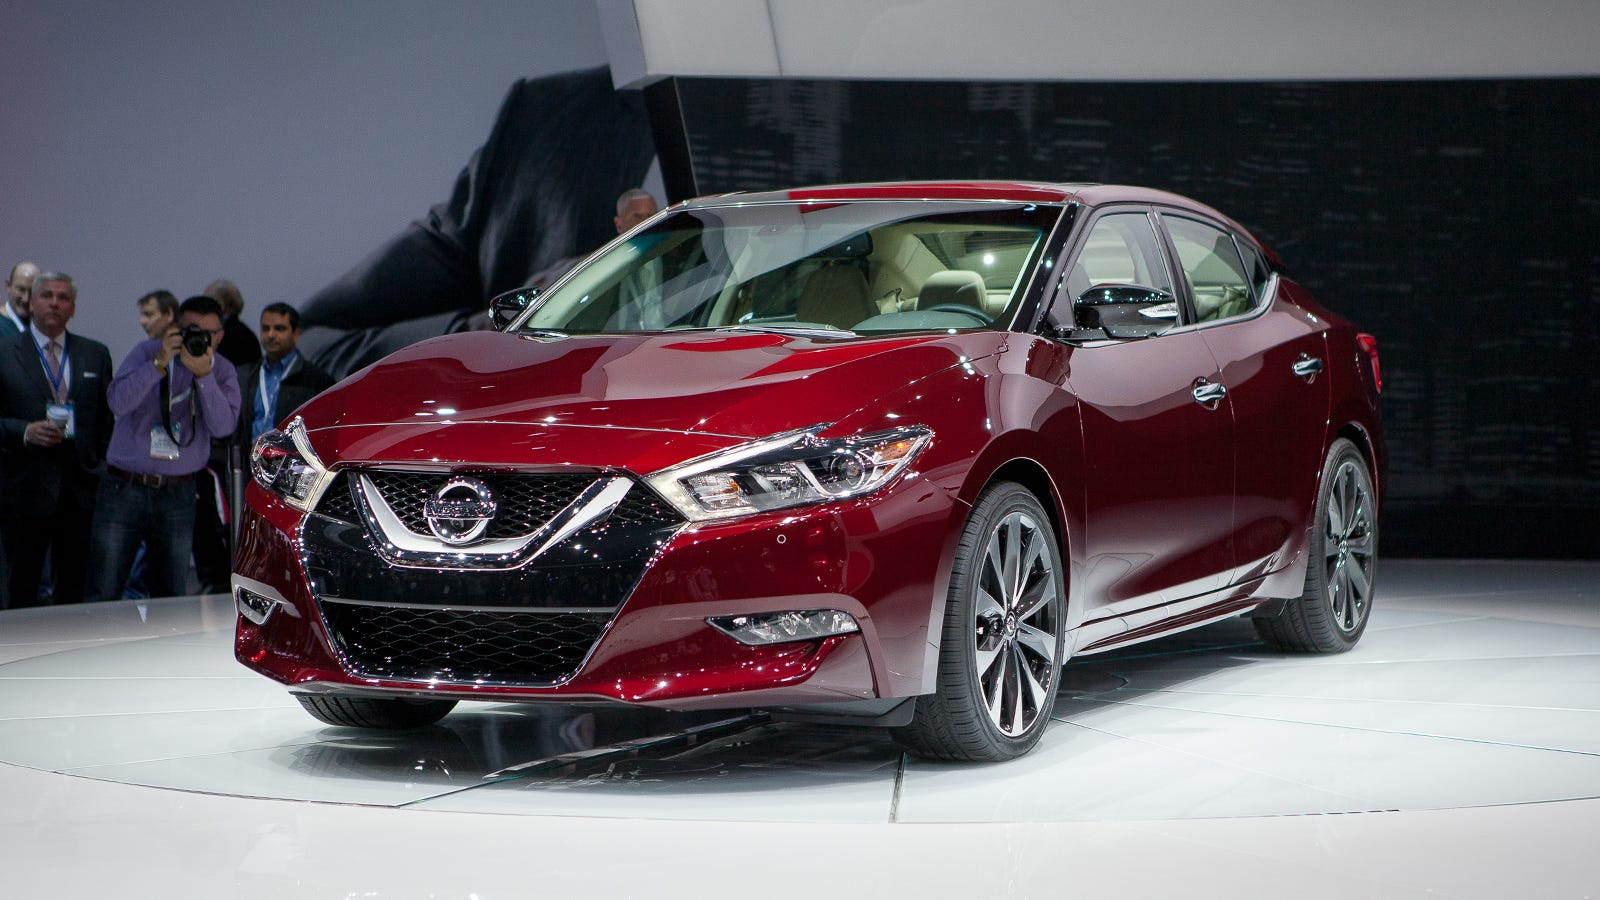 2016 Nissan Maxima: A 4-Door Sports Car If Sports Cars